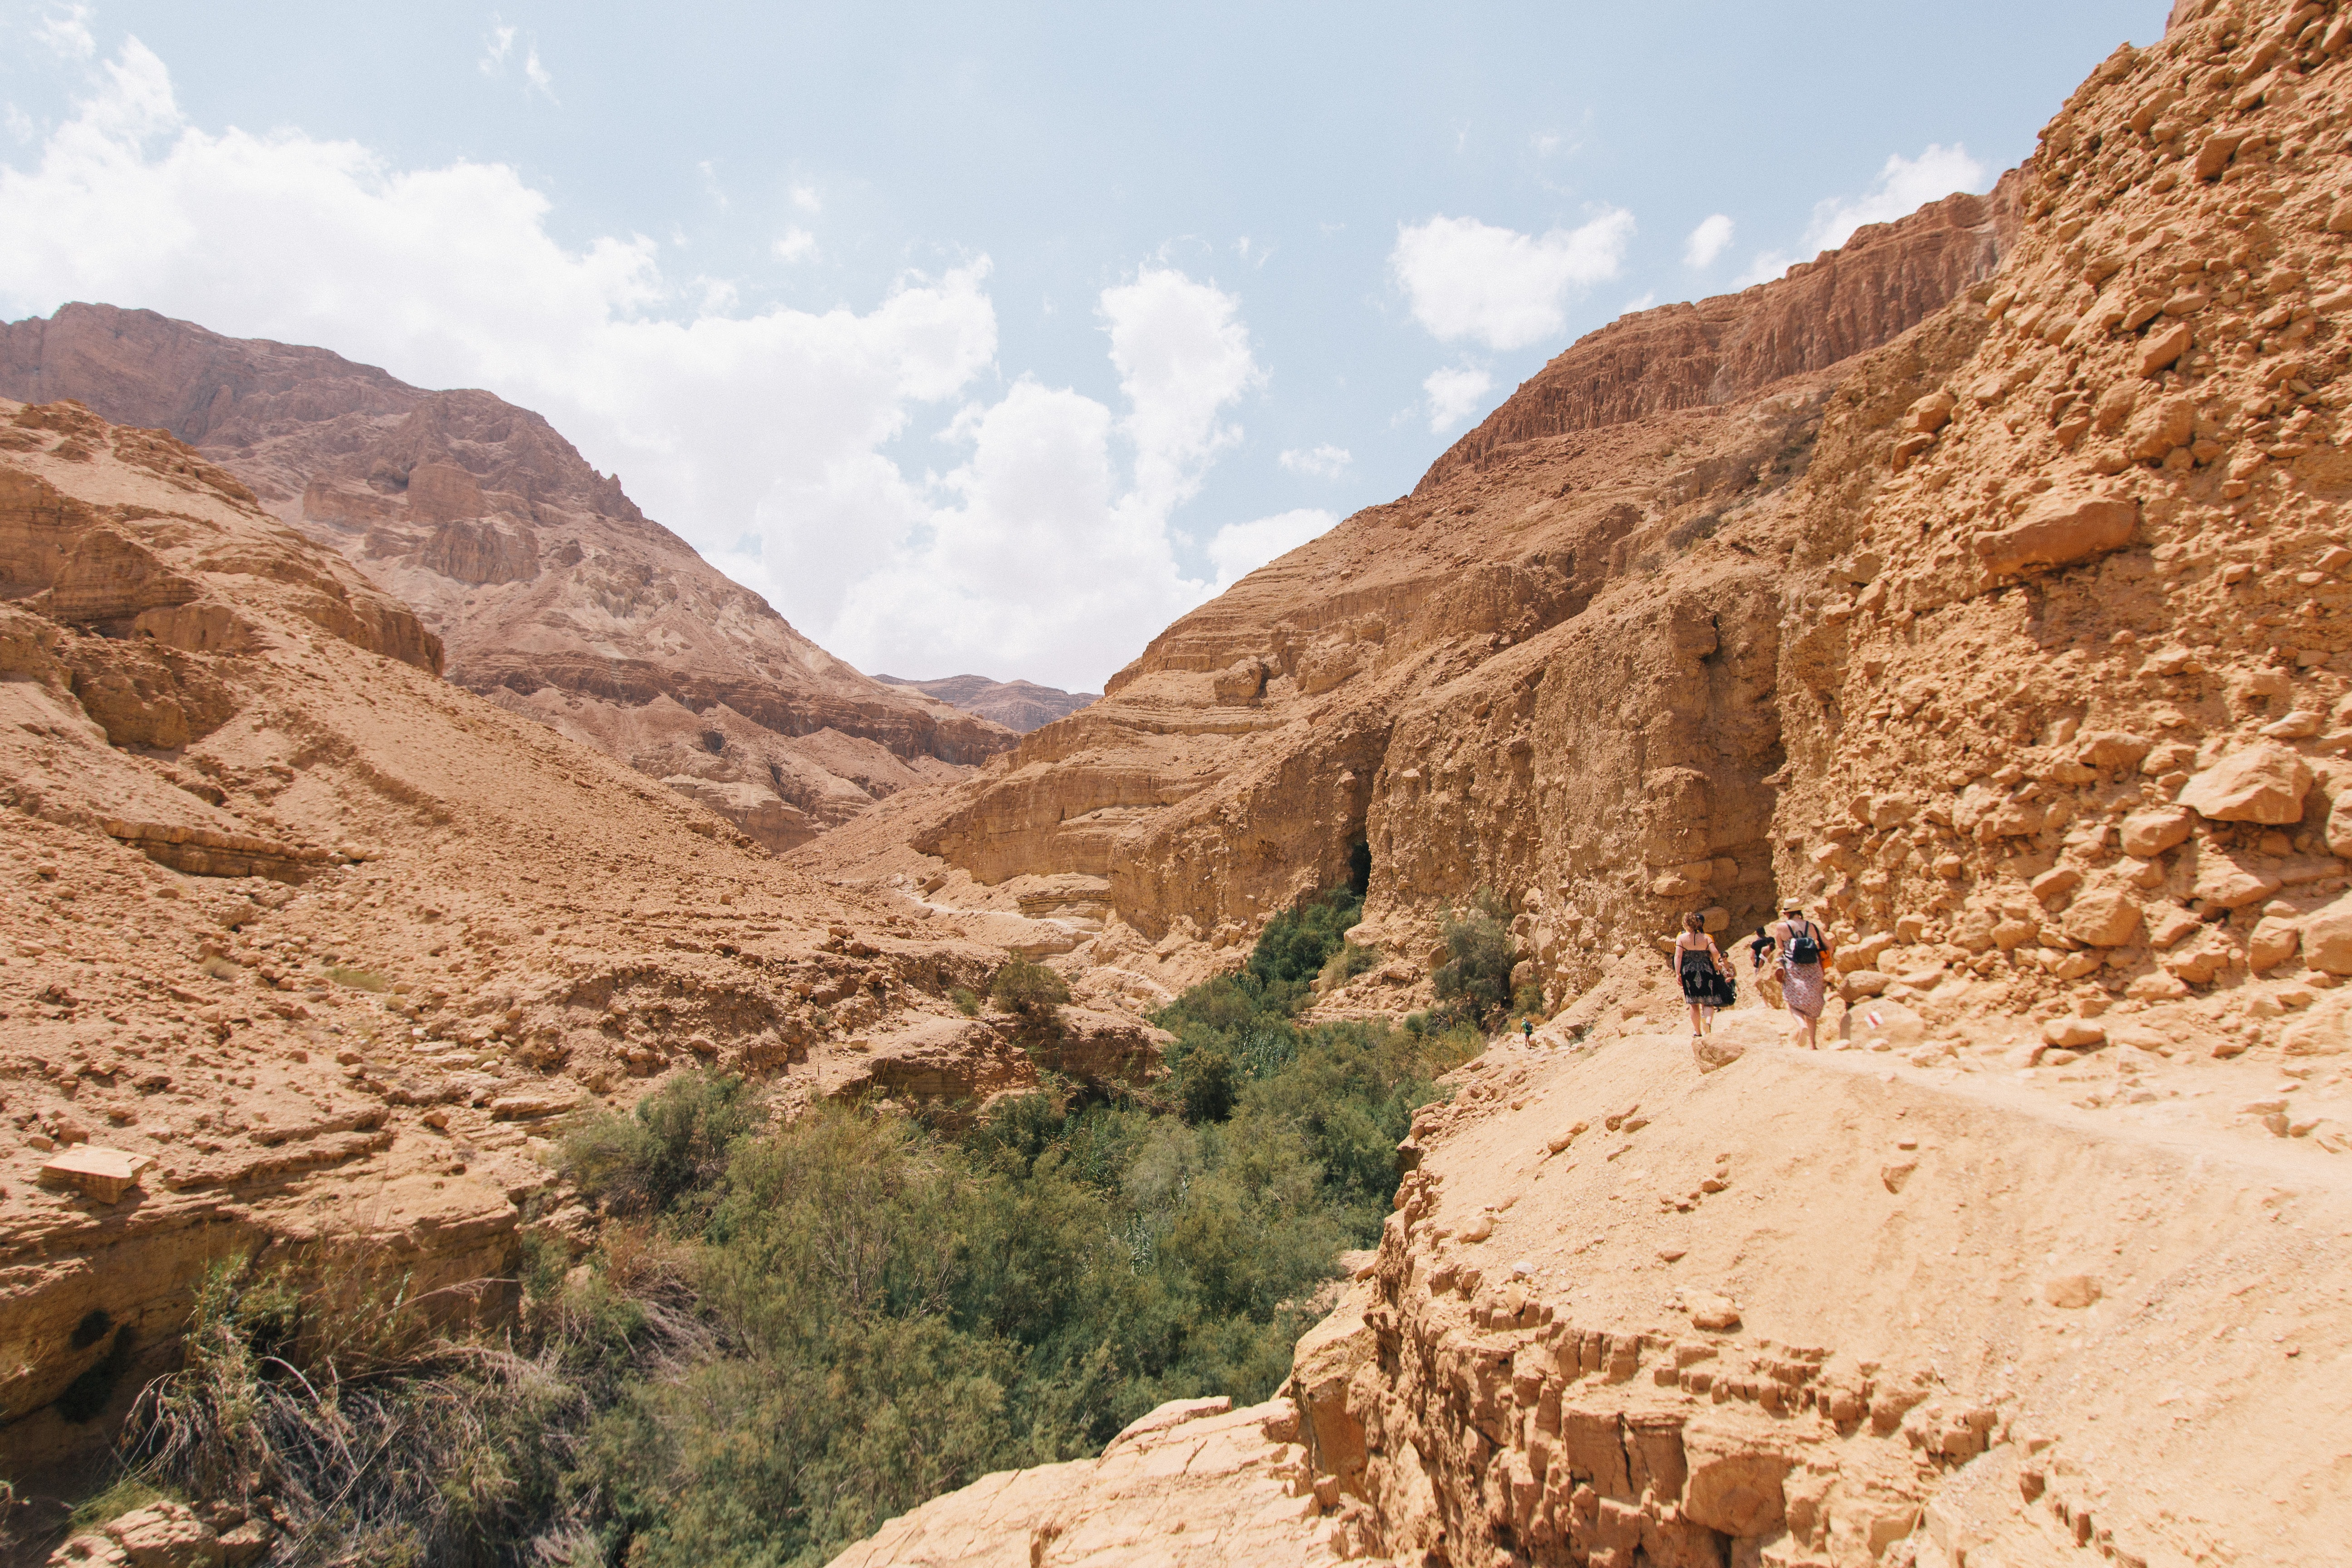 Rocky mountain ridges in the dry desert of Ein Gedi Reserve